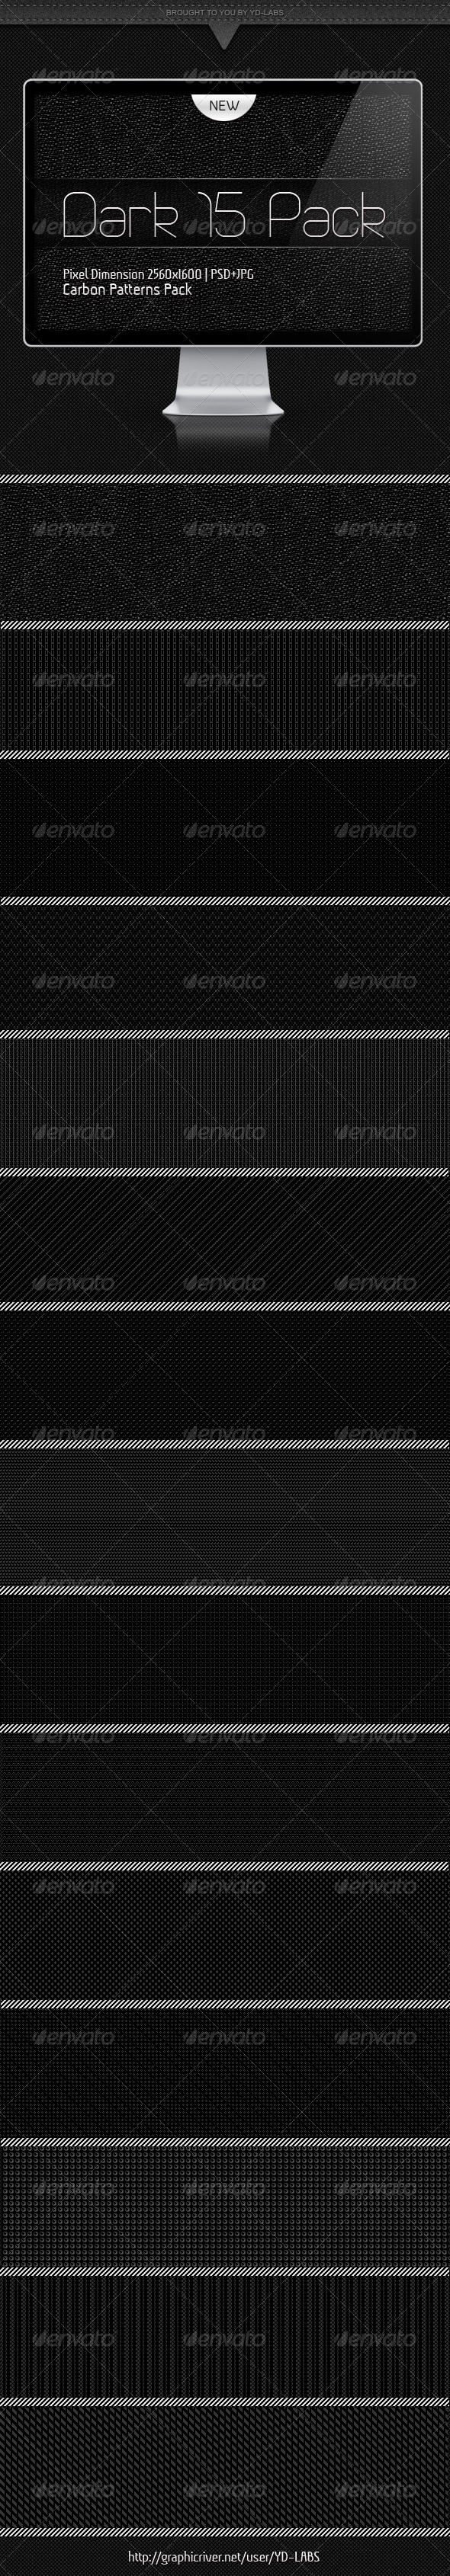 15 Dark Patterns Pack - Backgrounds Graphics